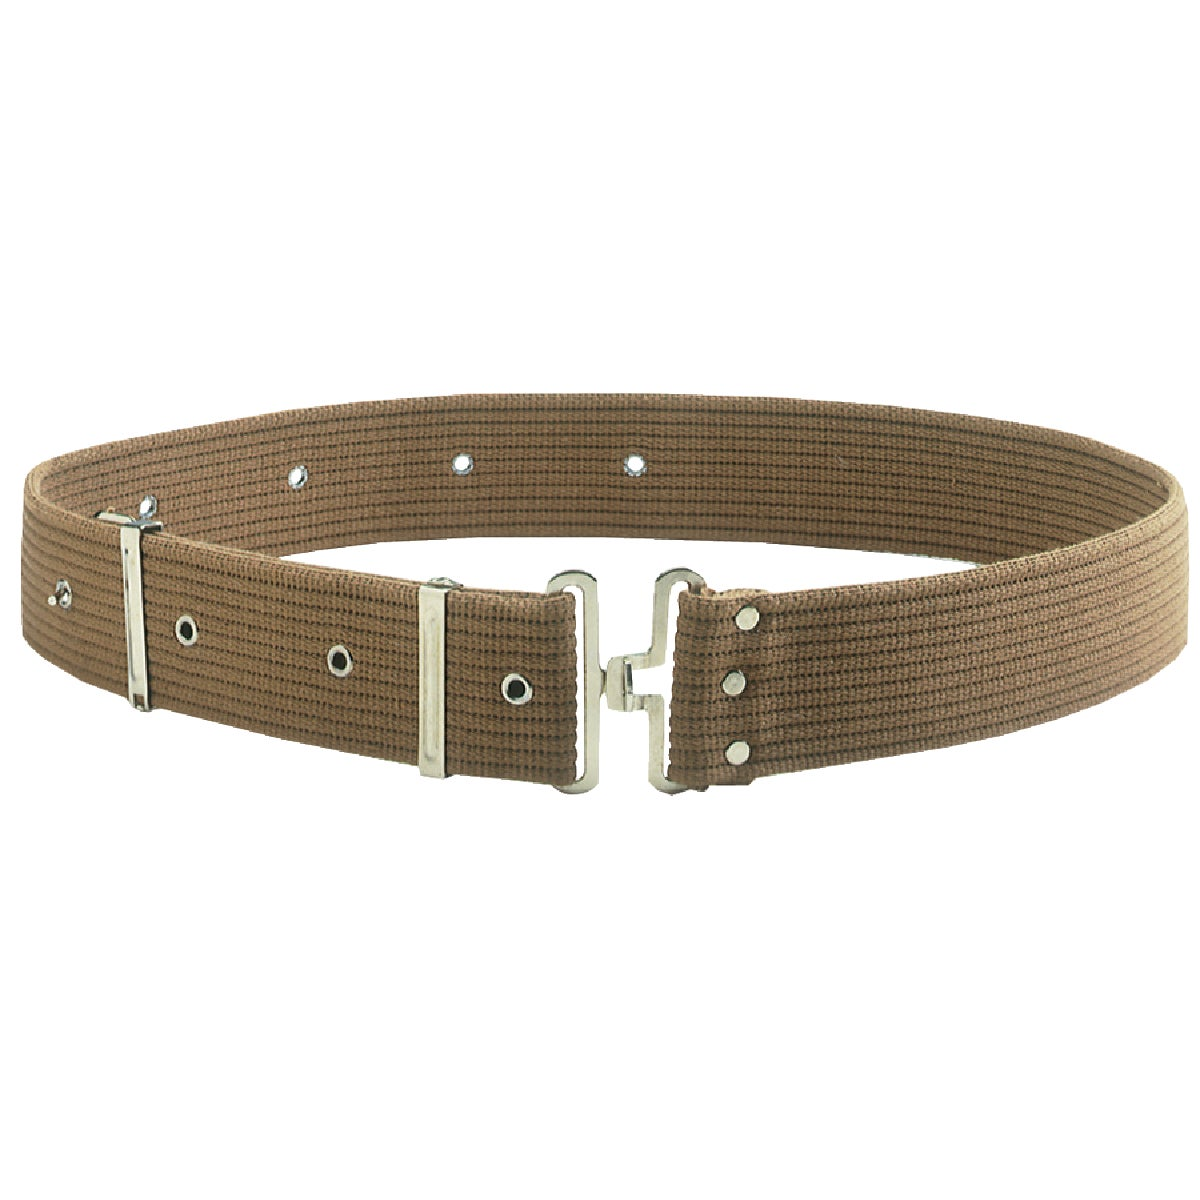 29-46 WEB WORK BELT - C501 by Custom Leathercraft